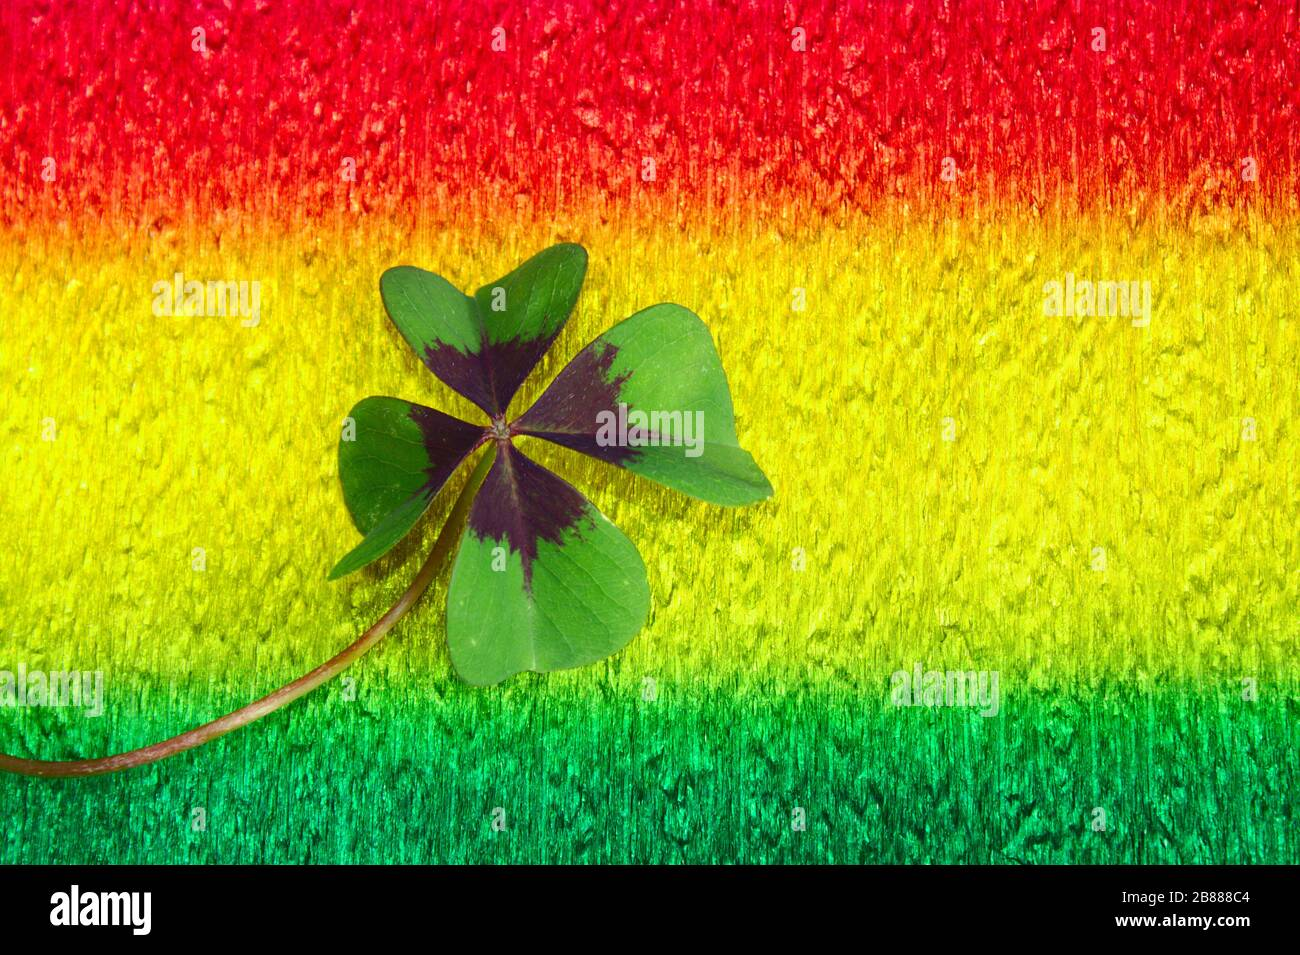 The picture shows lucky clover on colorful crepe paper Stock Photo